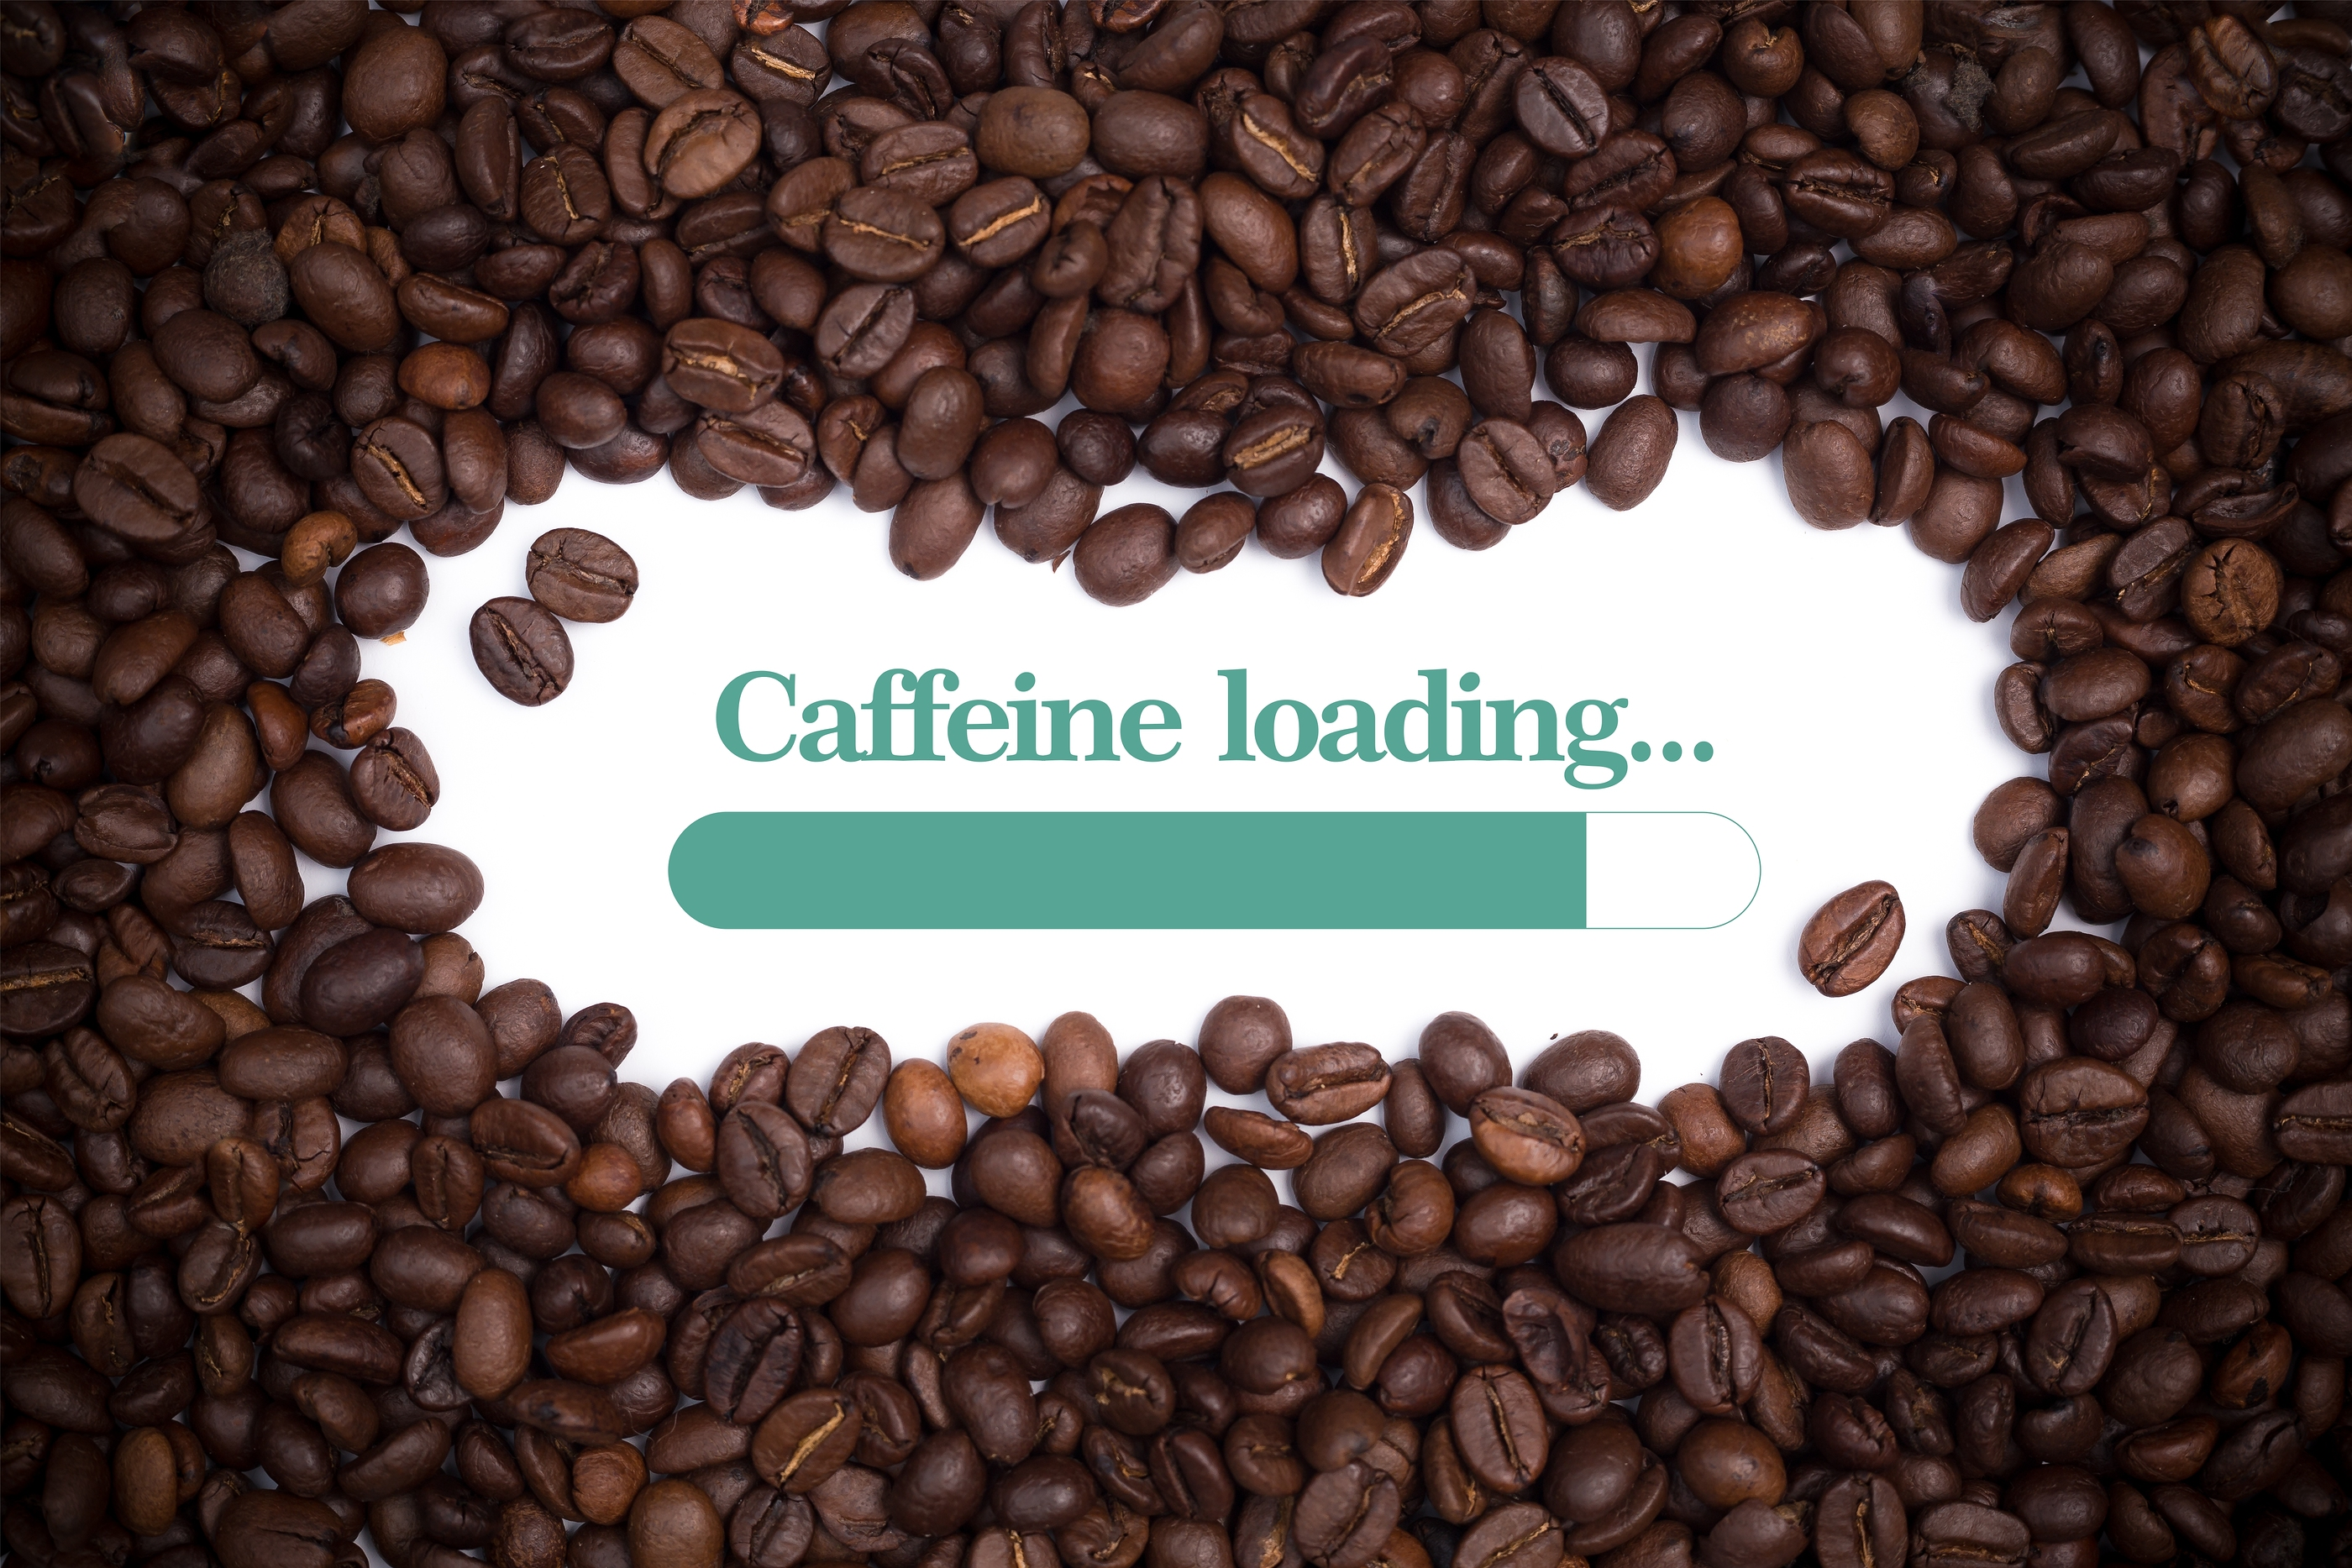 Caffeine Keeping You up at Night?